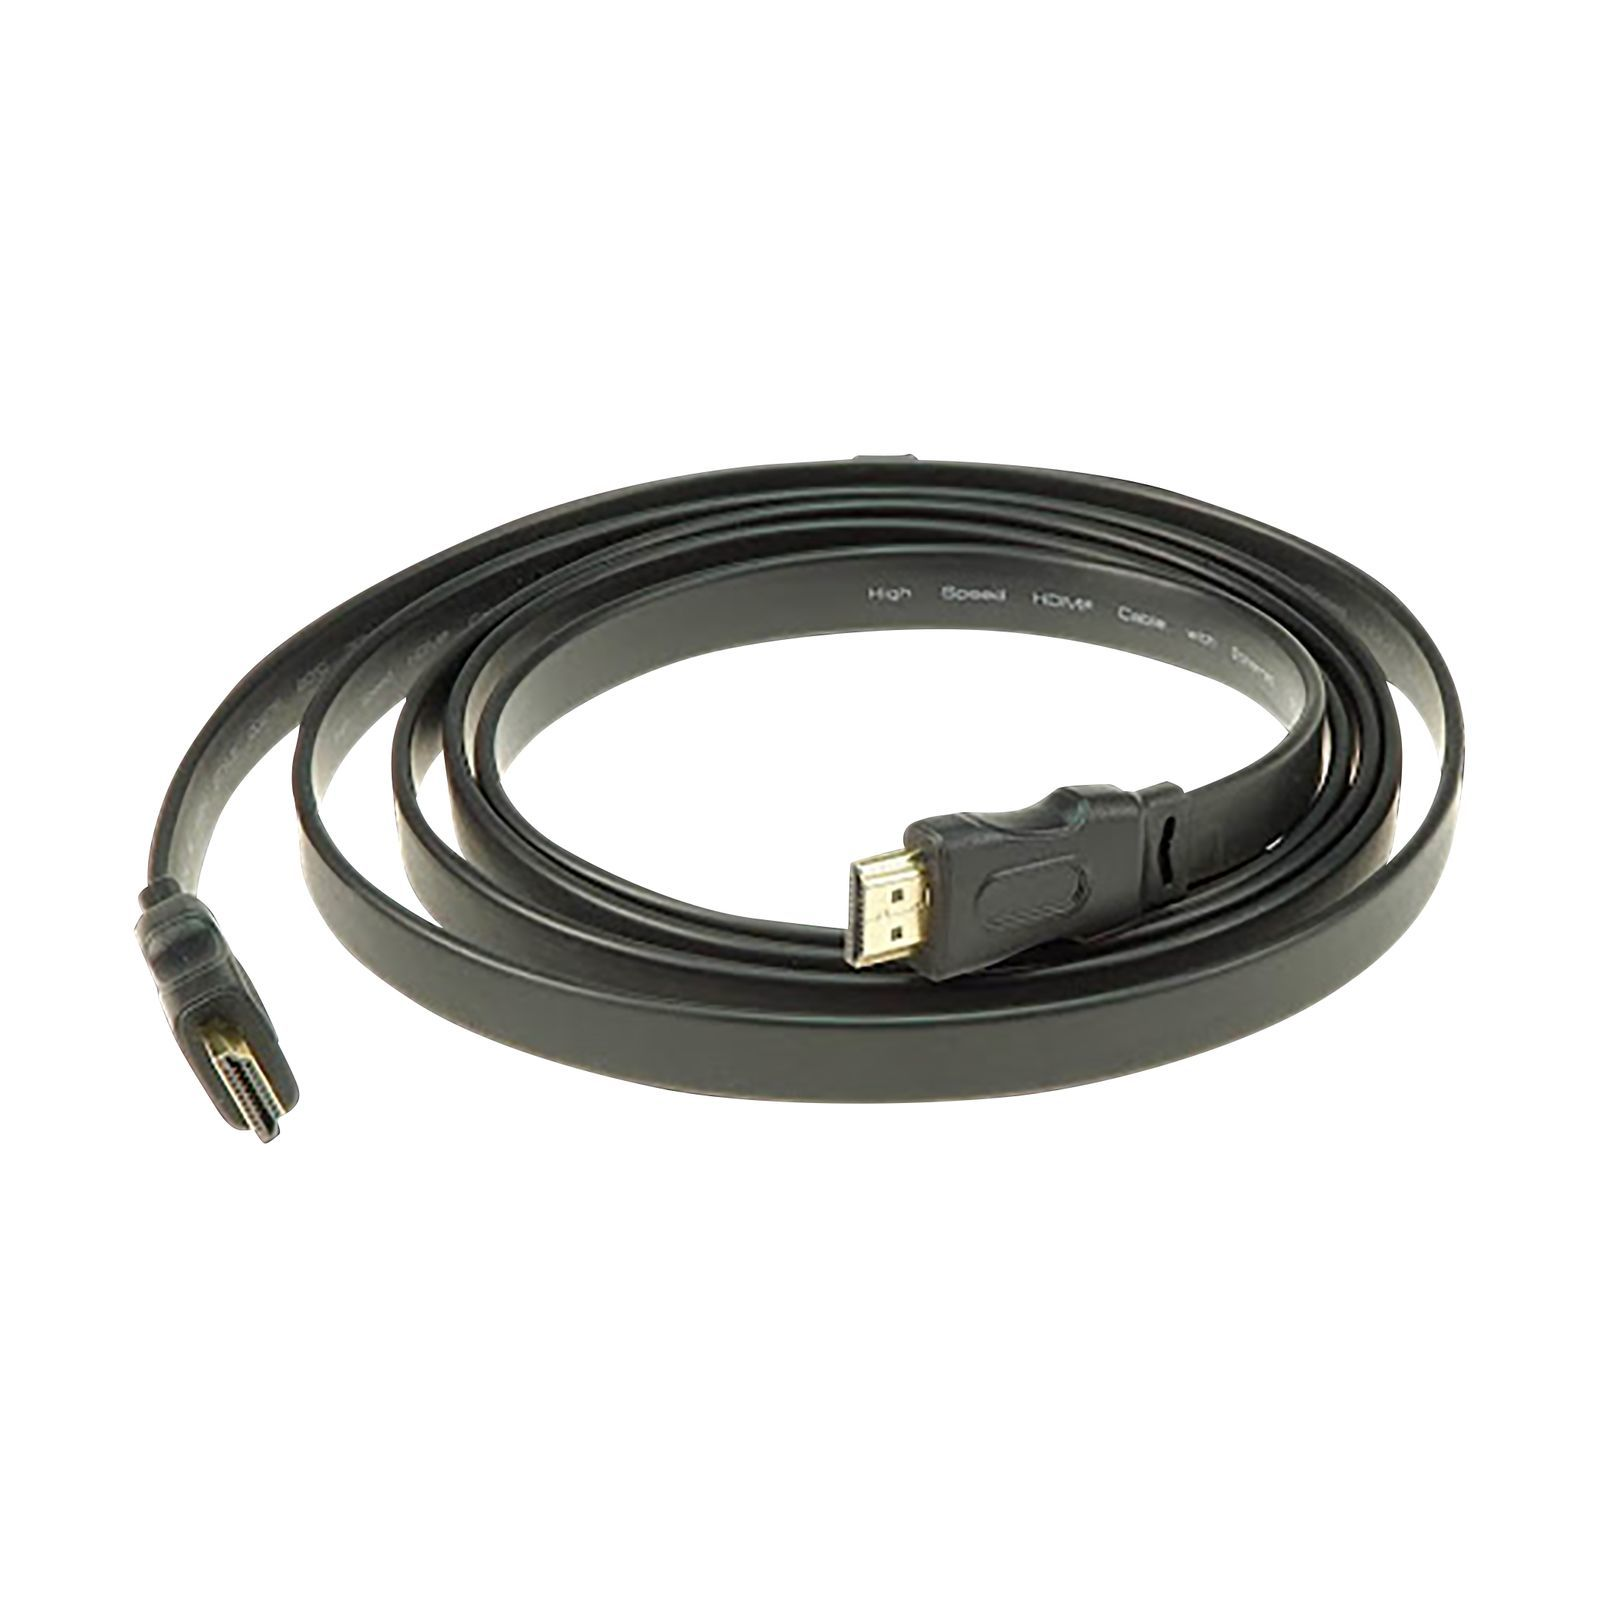 Klotz HDMI 1.4a High Speed A-A, 1 Meter, Flachkabel Produktbild